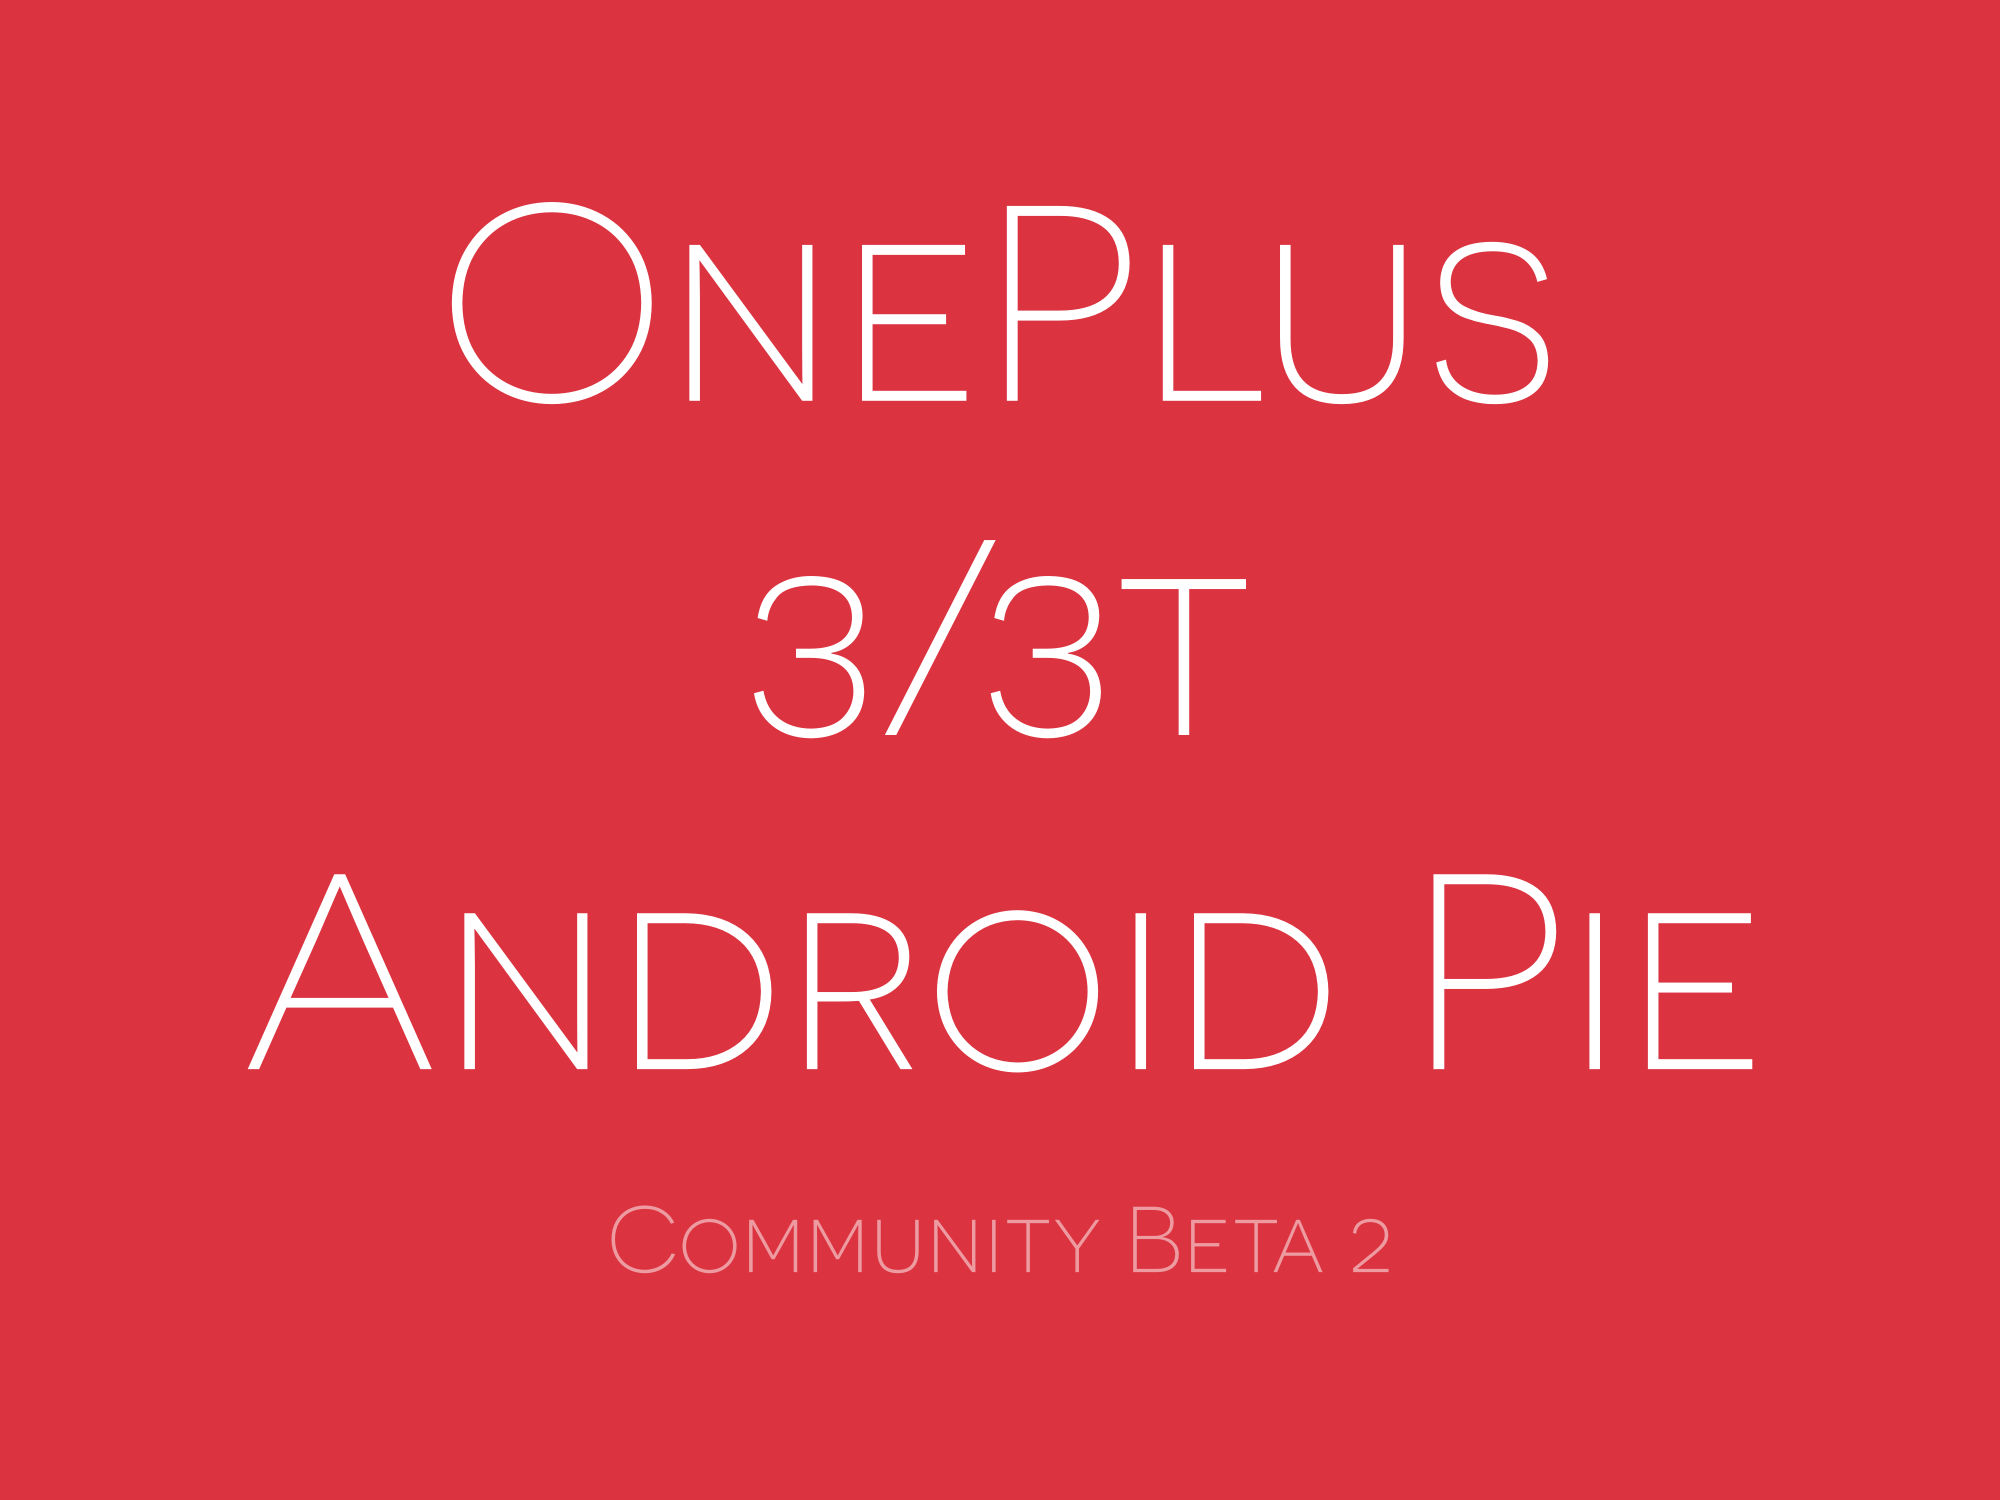 Android Pie community beta 2